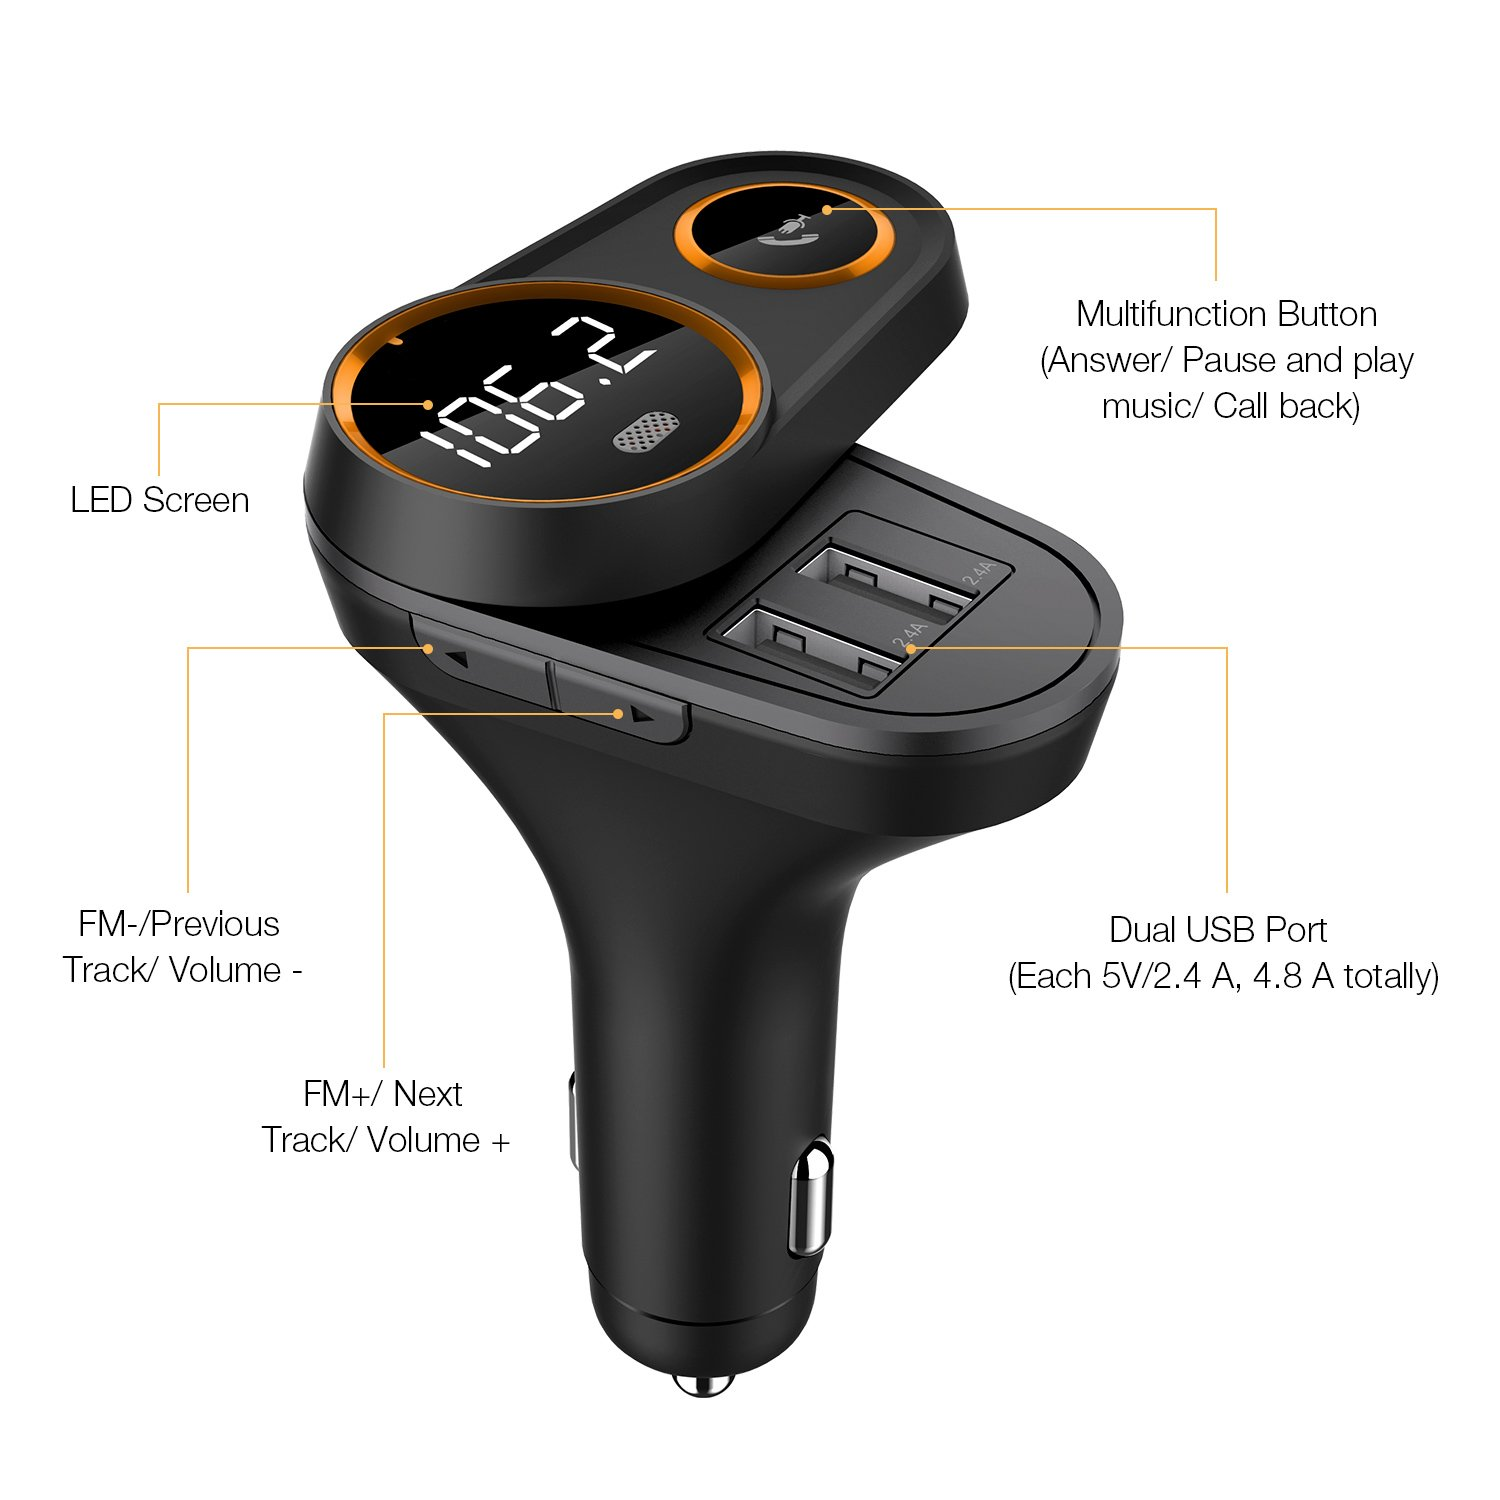 FM Transmitter, Frienda Wireless In-Car FM Radio Adapter 5 V/4.8 A Dual USB Ports Car Charger for iPhone iPad Samsung Android Phones, Hands-free Calling, MP3 Player, Support for Bluetooth by Frienda (Image #7)